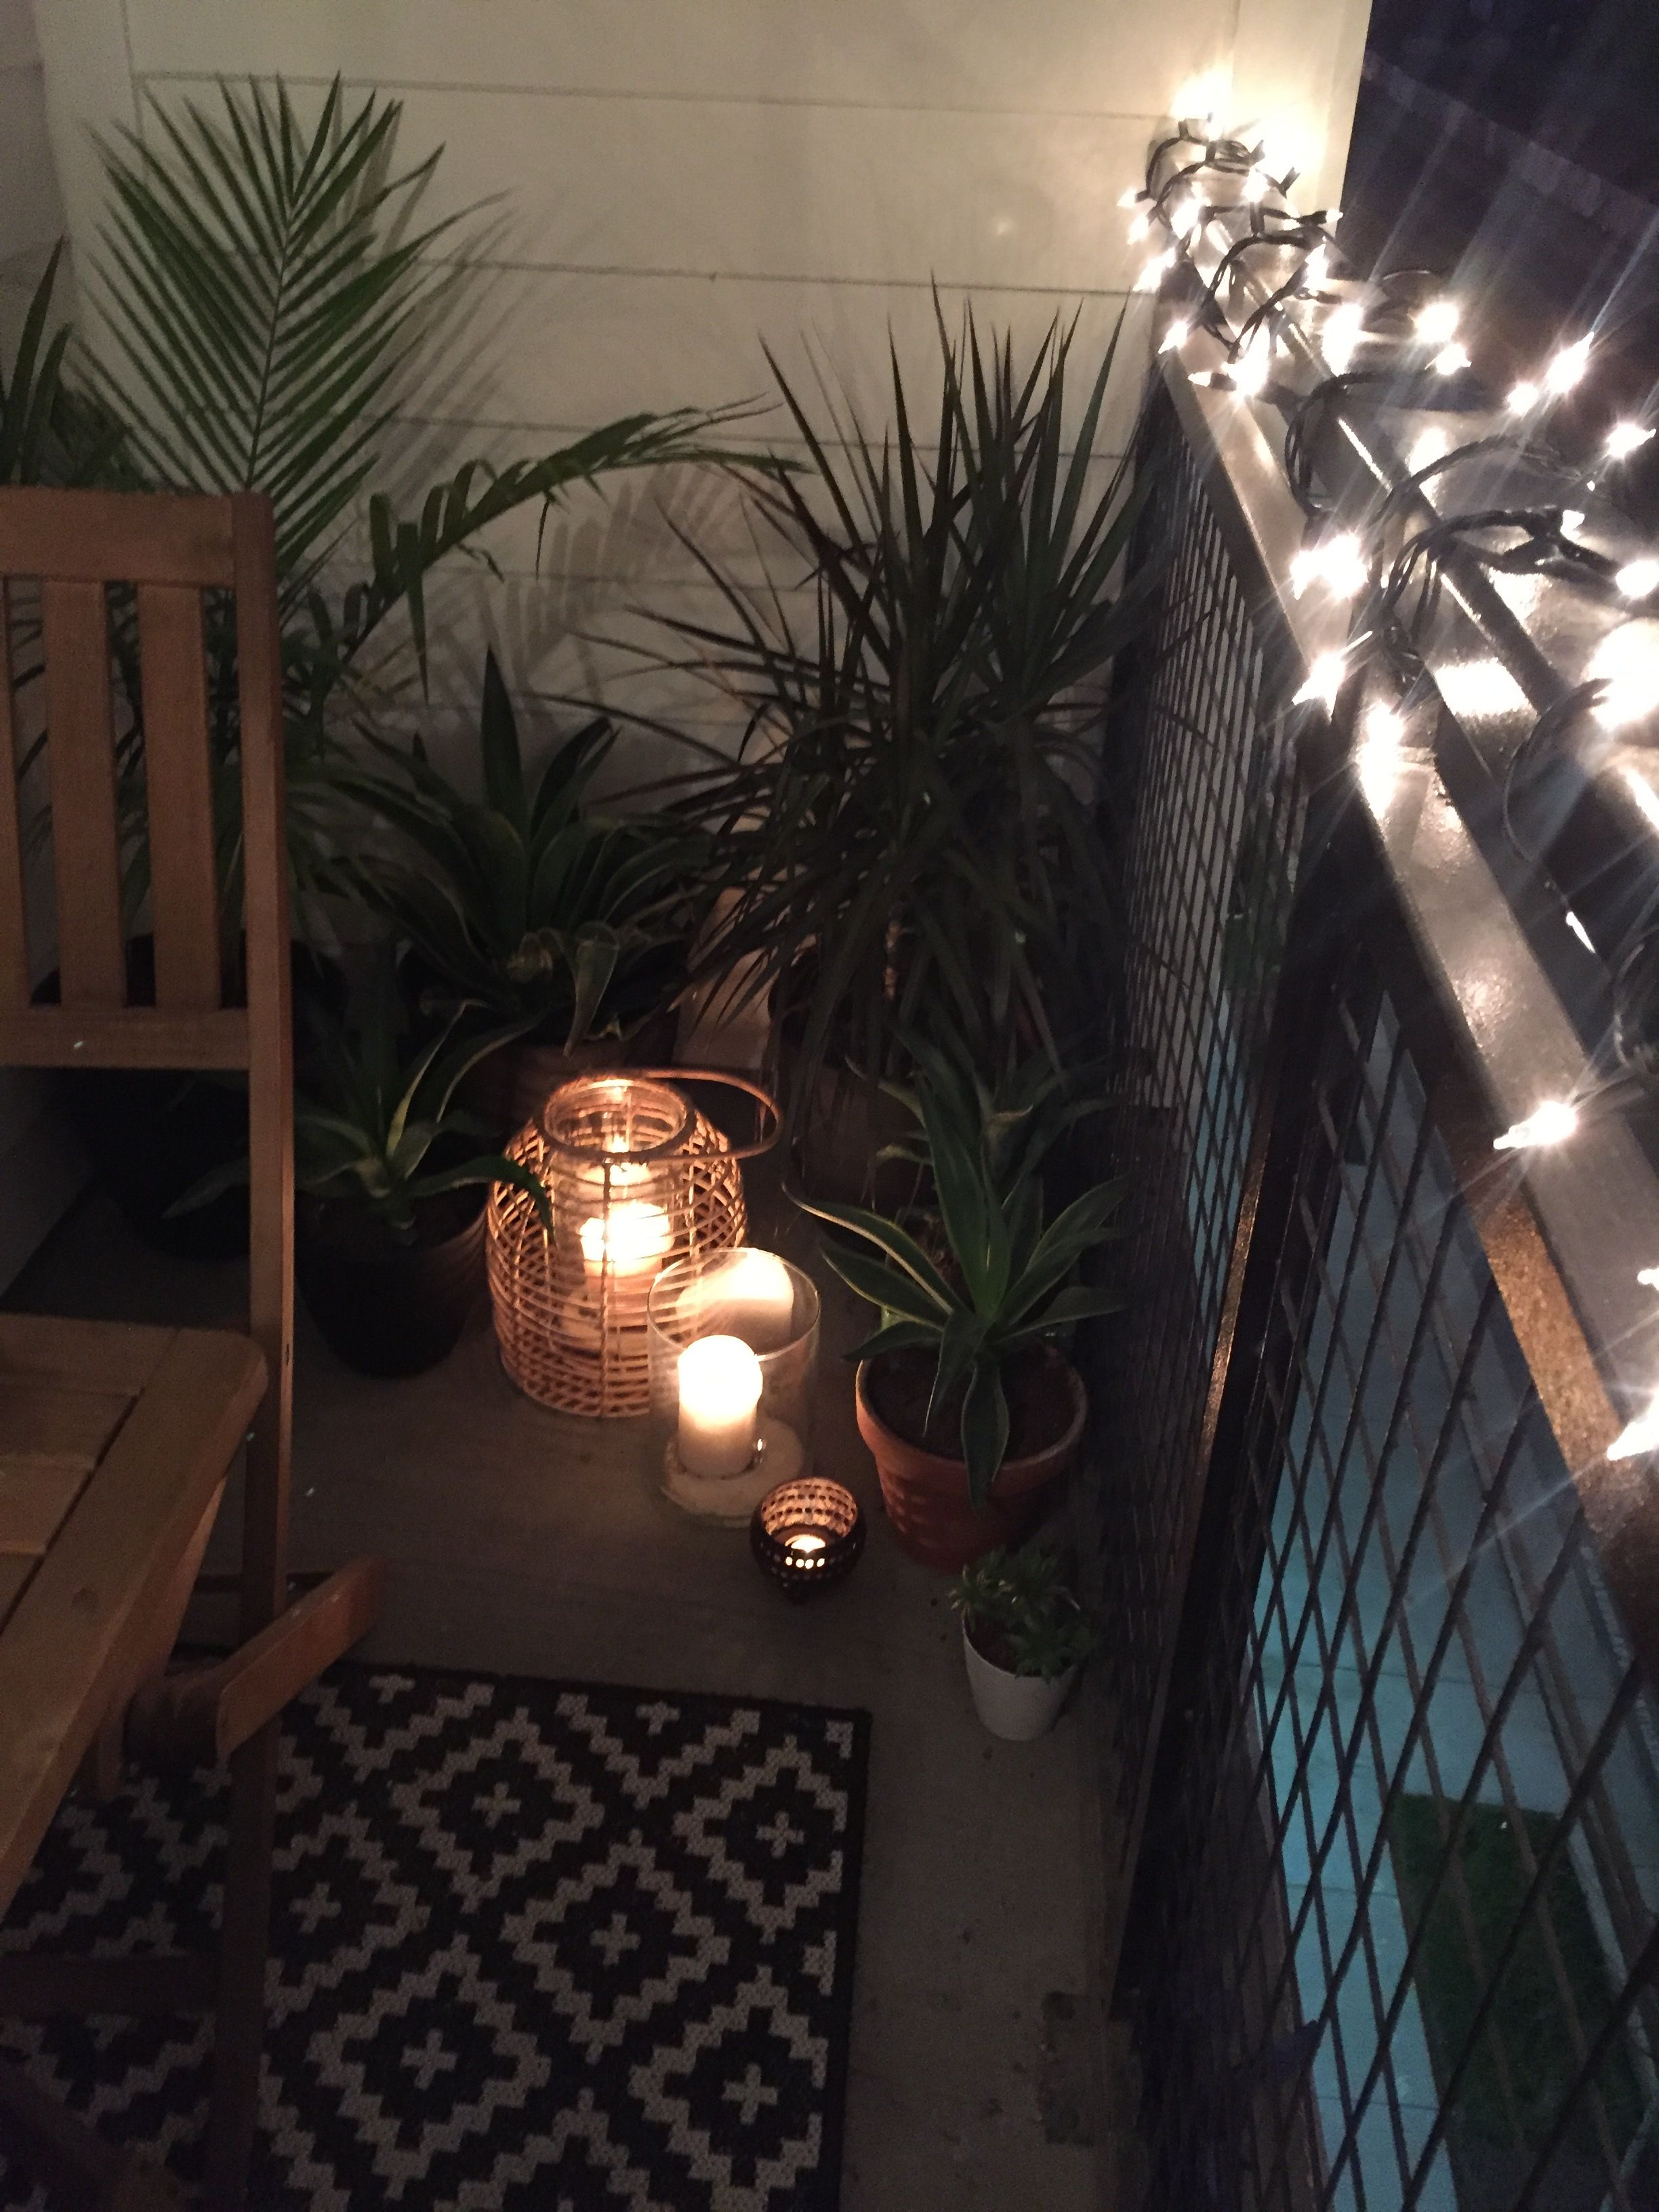 Tropical Plants Candles Lanterns String Lights Small Apartment Balcony Decor Ideas Perfect For Hot Summer Nights Outside And Dining Al Fresco